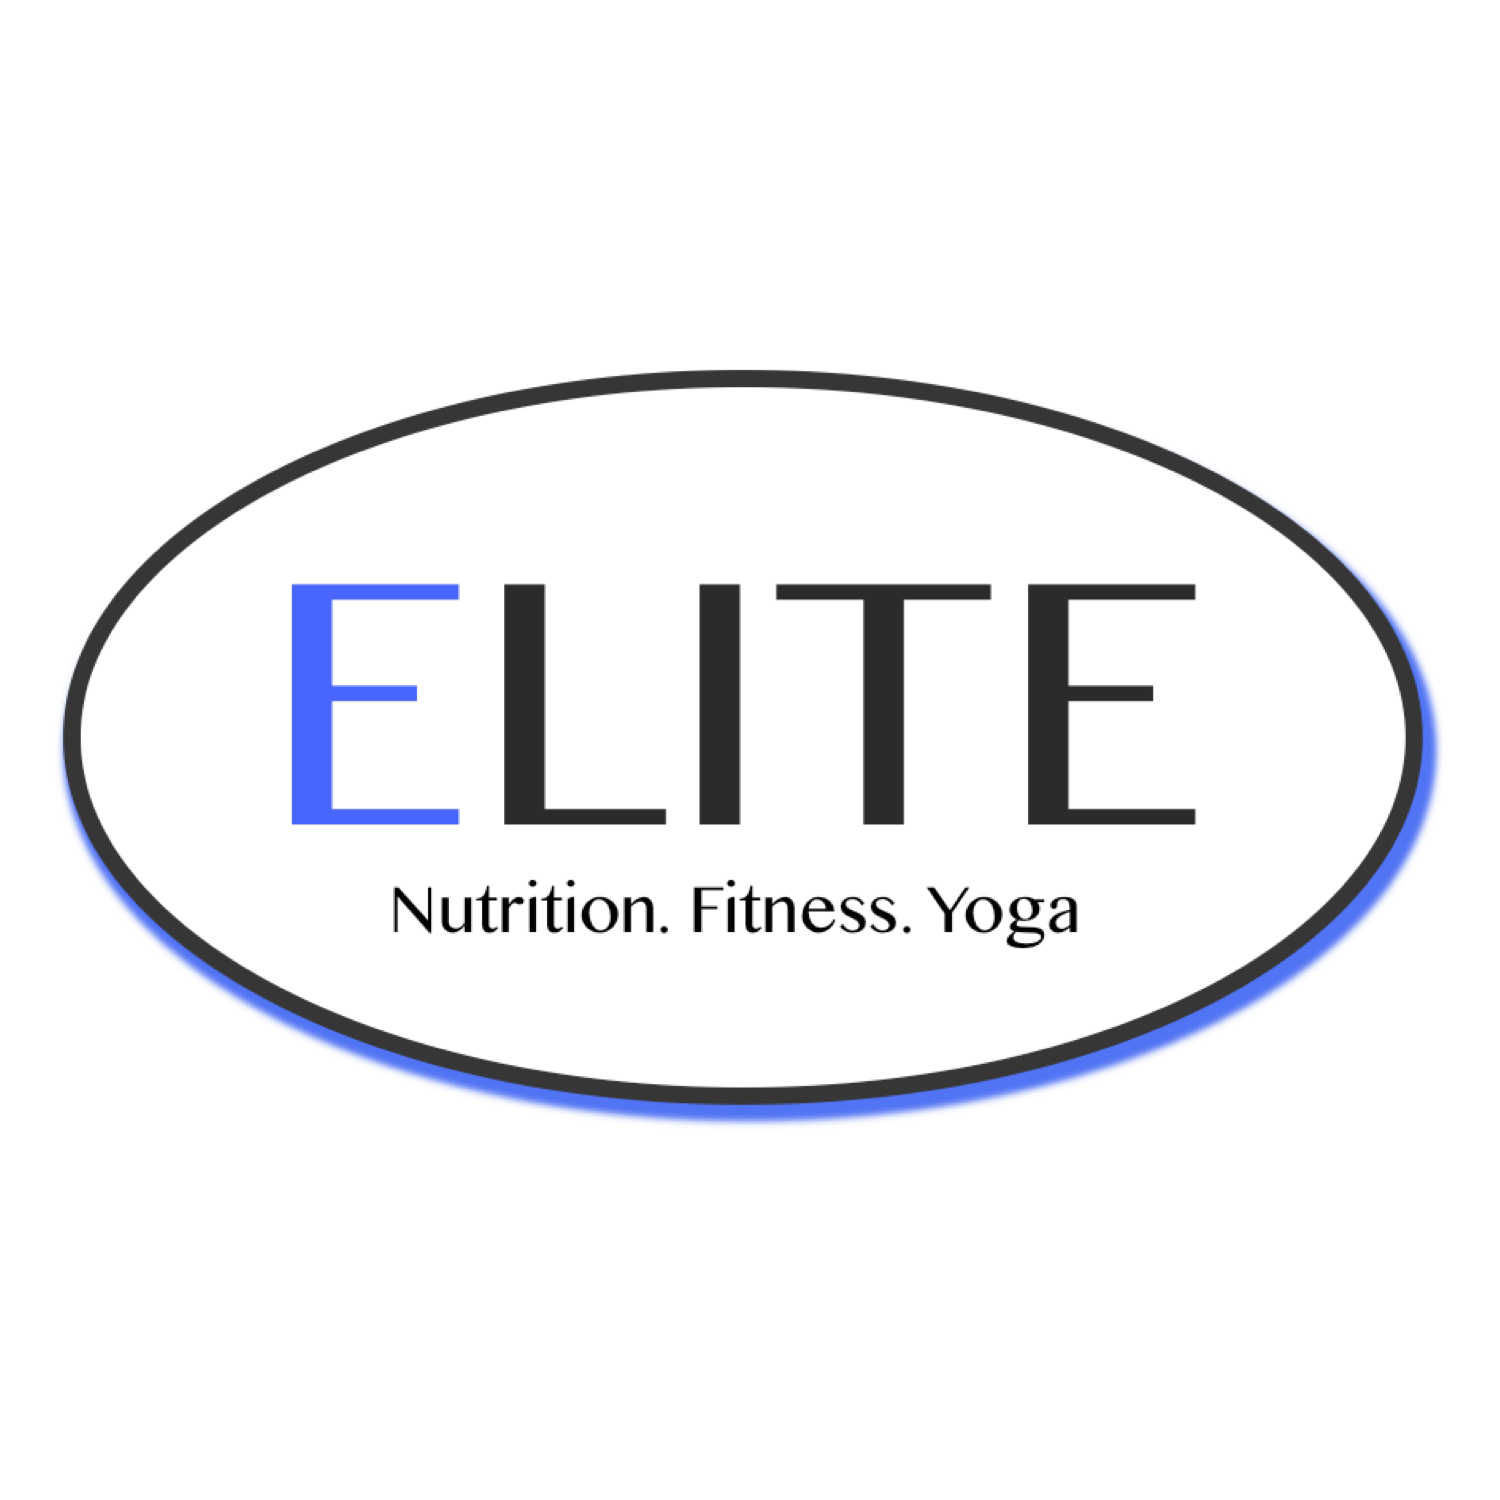 Individualized Nutrition & Wellness Coaching, Personal Training, Yoga, and Group Fitness Classes.